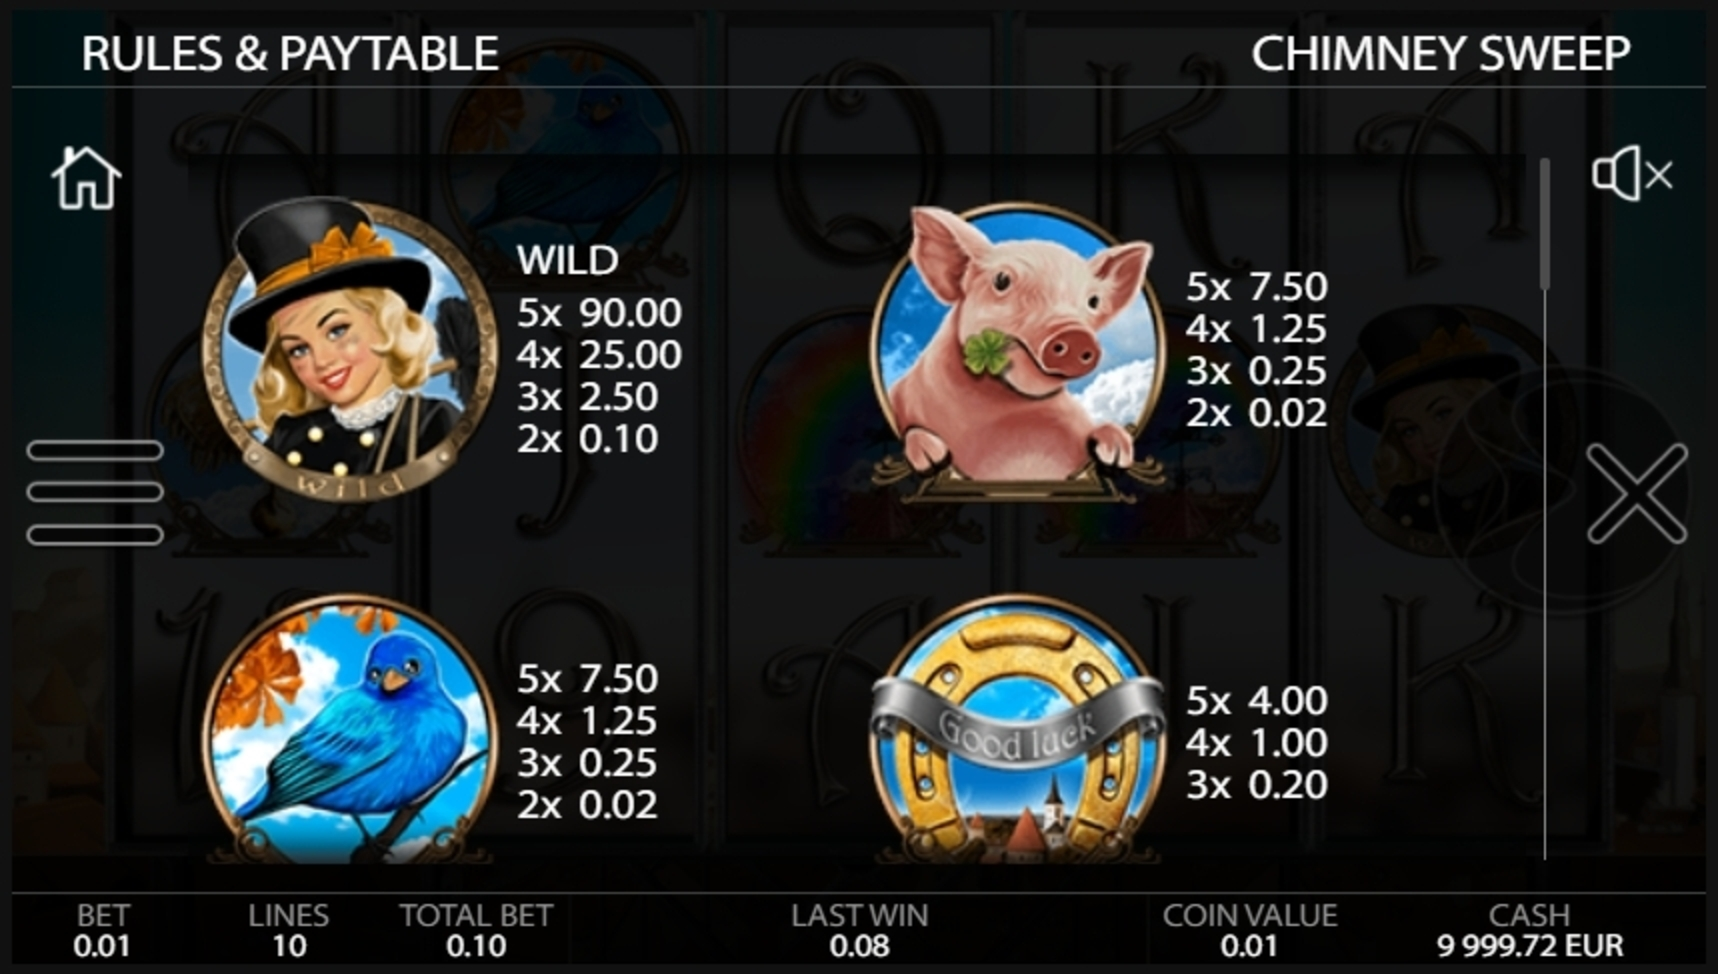 Info of Chimney Sweep Slot Game by Endorphina